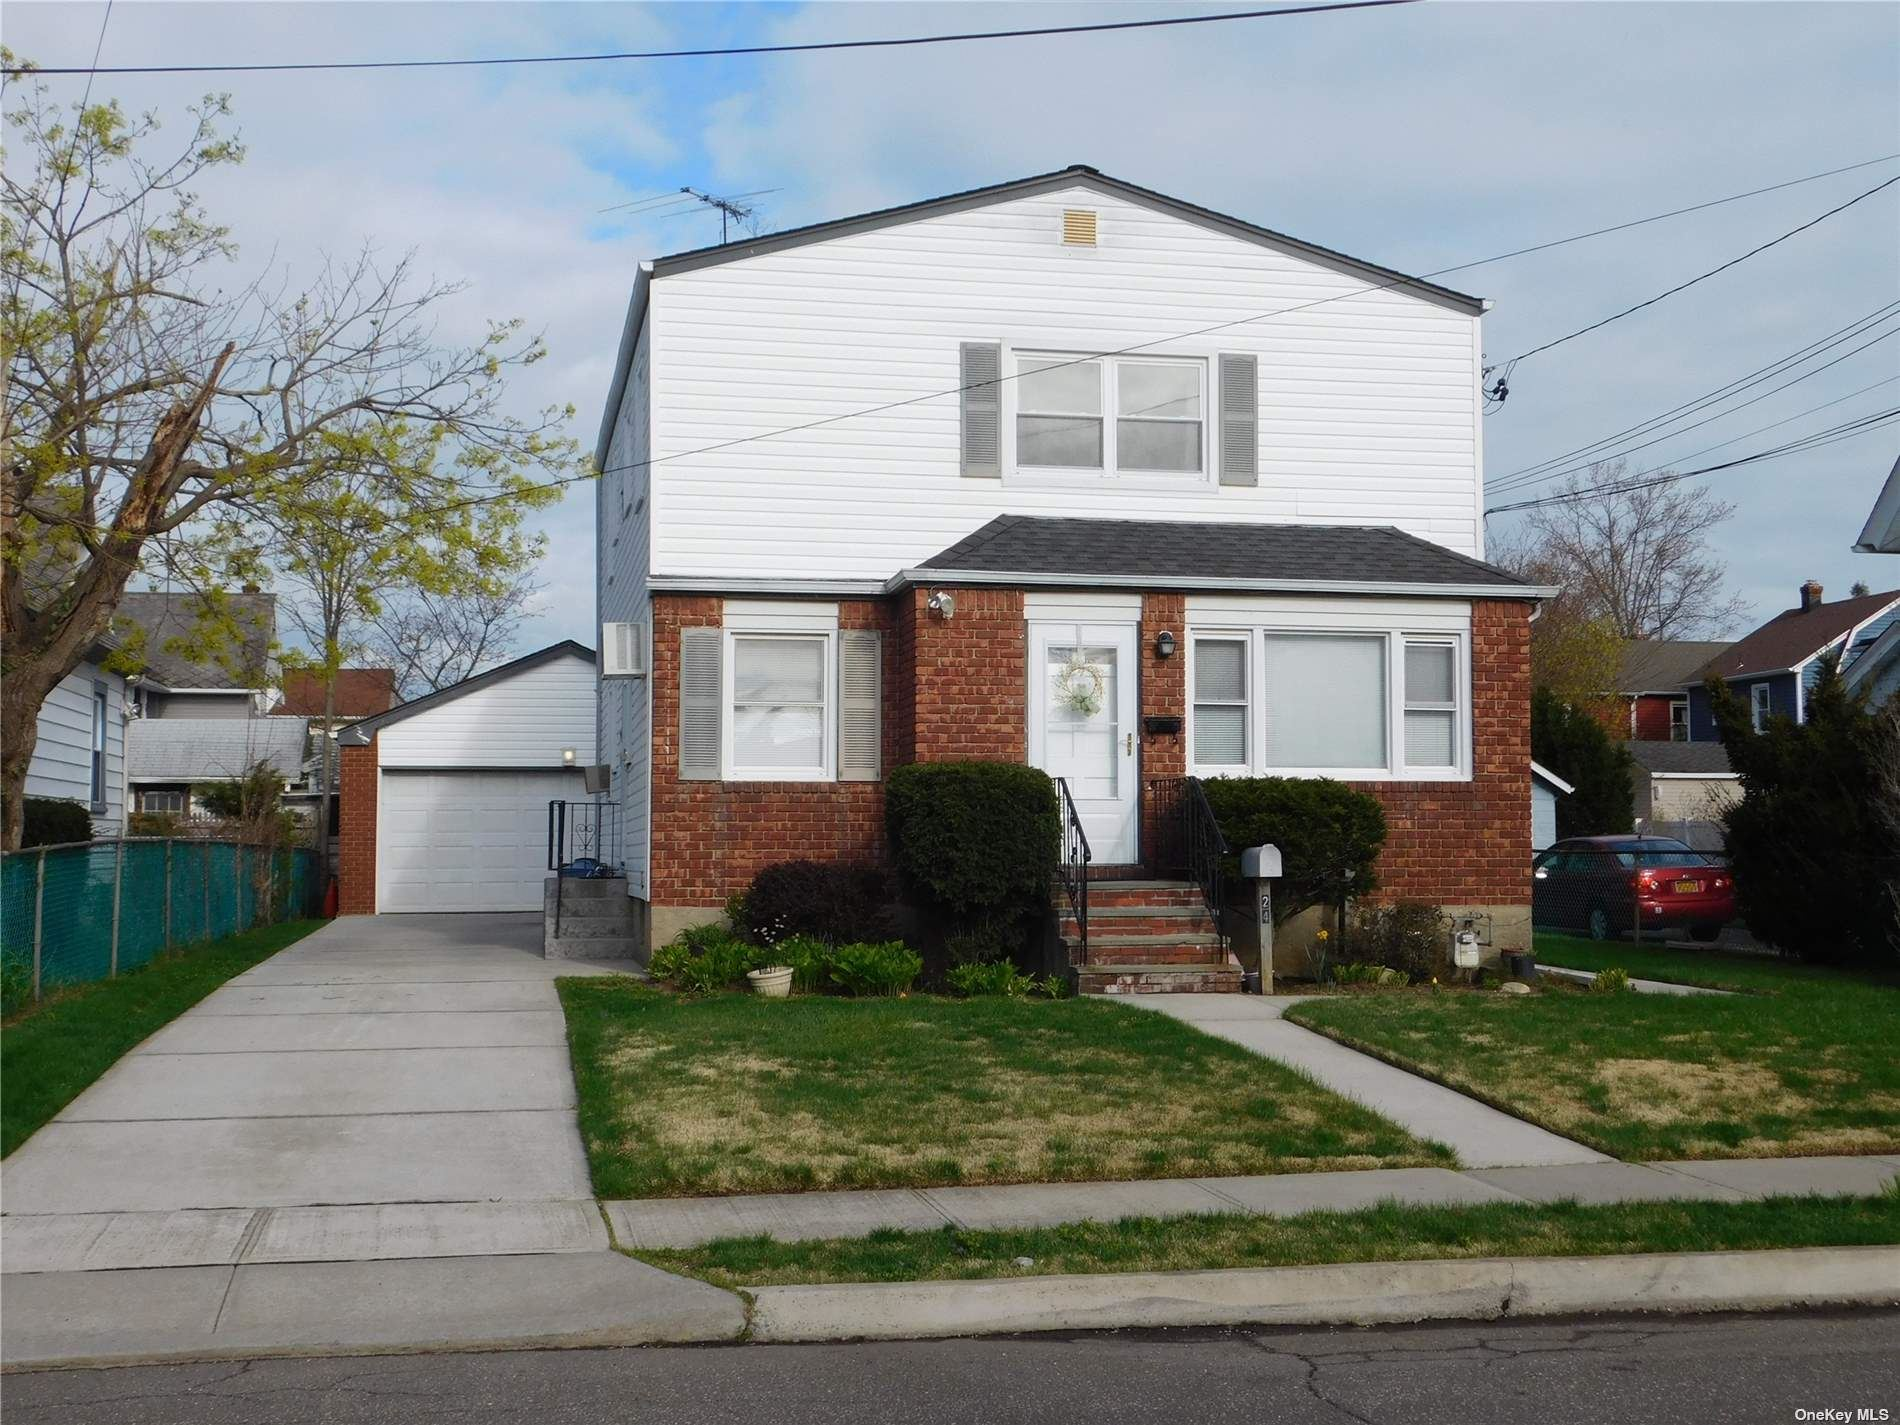 24 Cammerer Ave., East Rockaway, NY 11518 - MLS#: 3304389